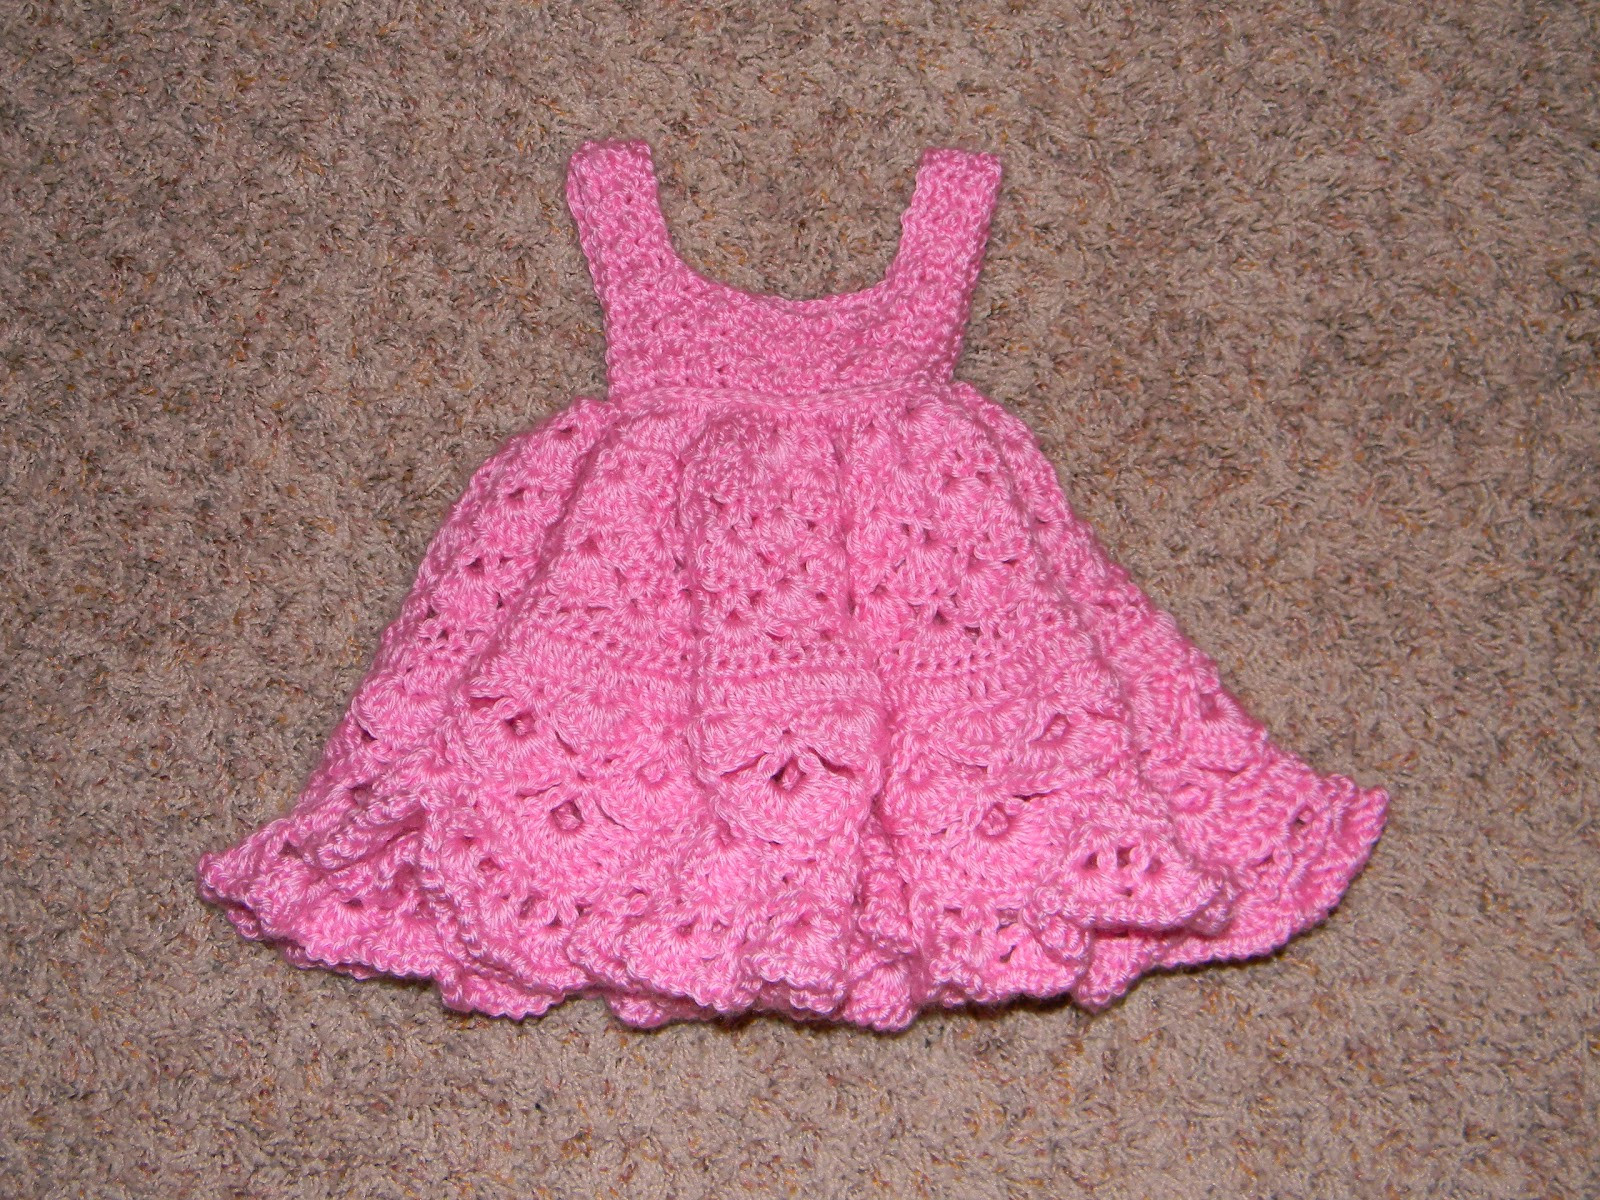 Lovely Sassy S Crafty Creations Crochet Baby Girl Dress Crochet for Girls Of Marvelous 40 Pics Crochet for Girls